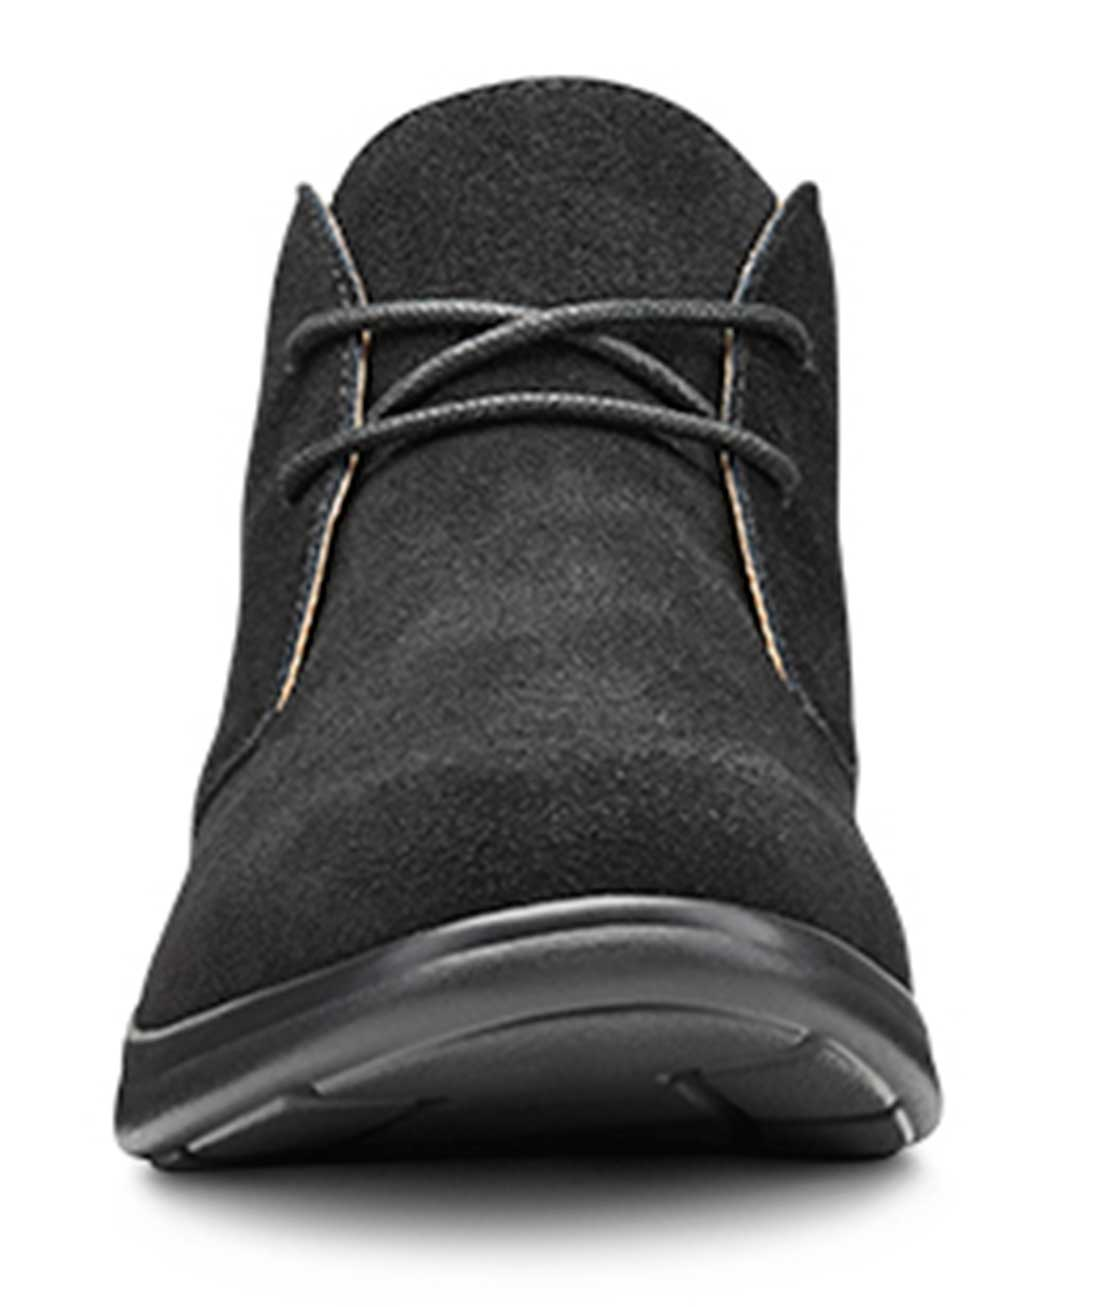 4 Wide Comfort Womens Cara Casual Suede Leather Bootie Chukka Boot Black US Dr C//D